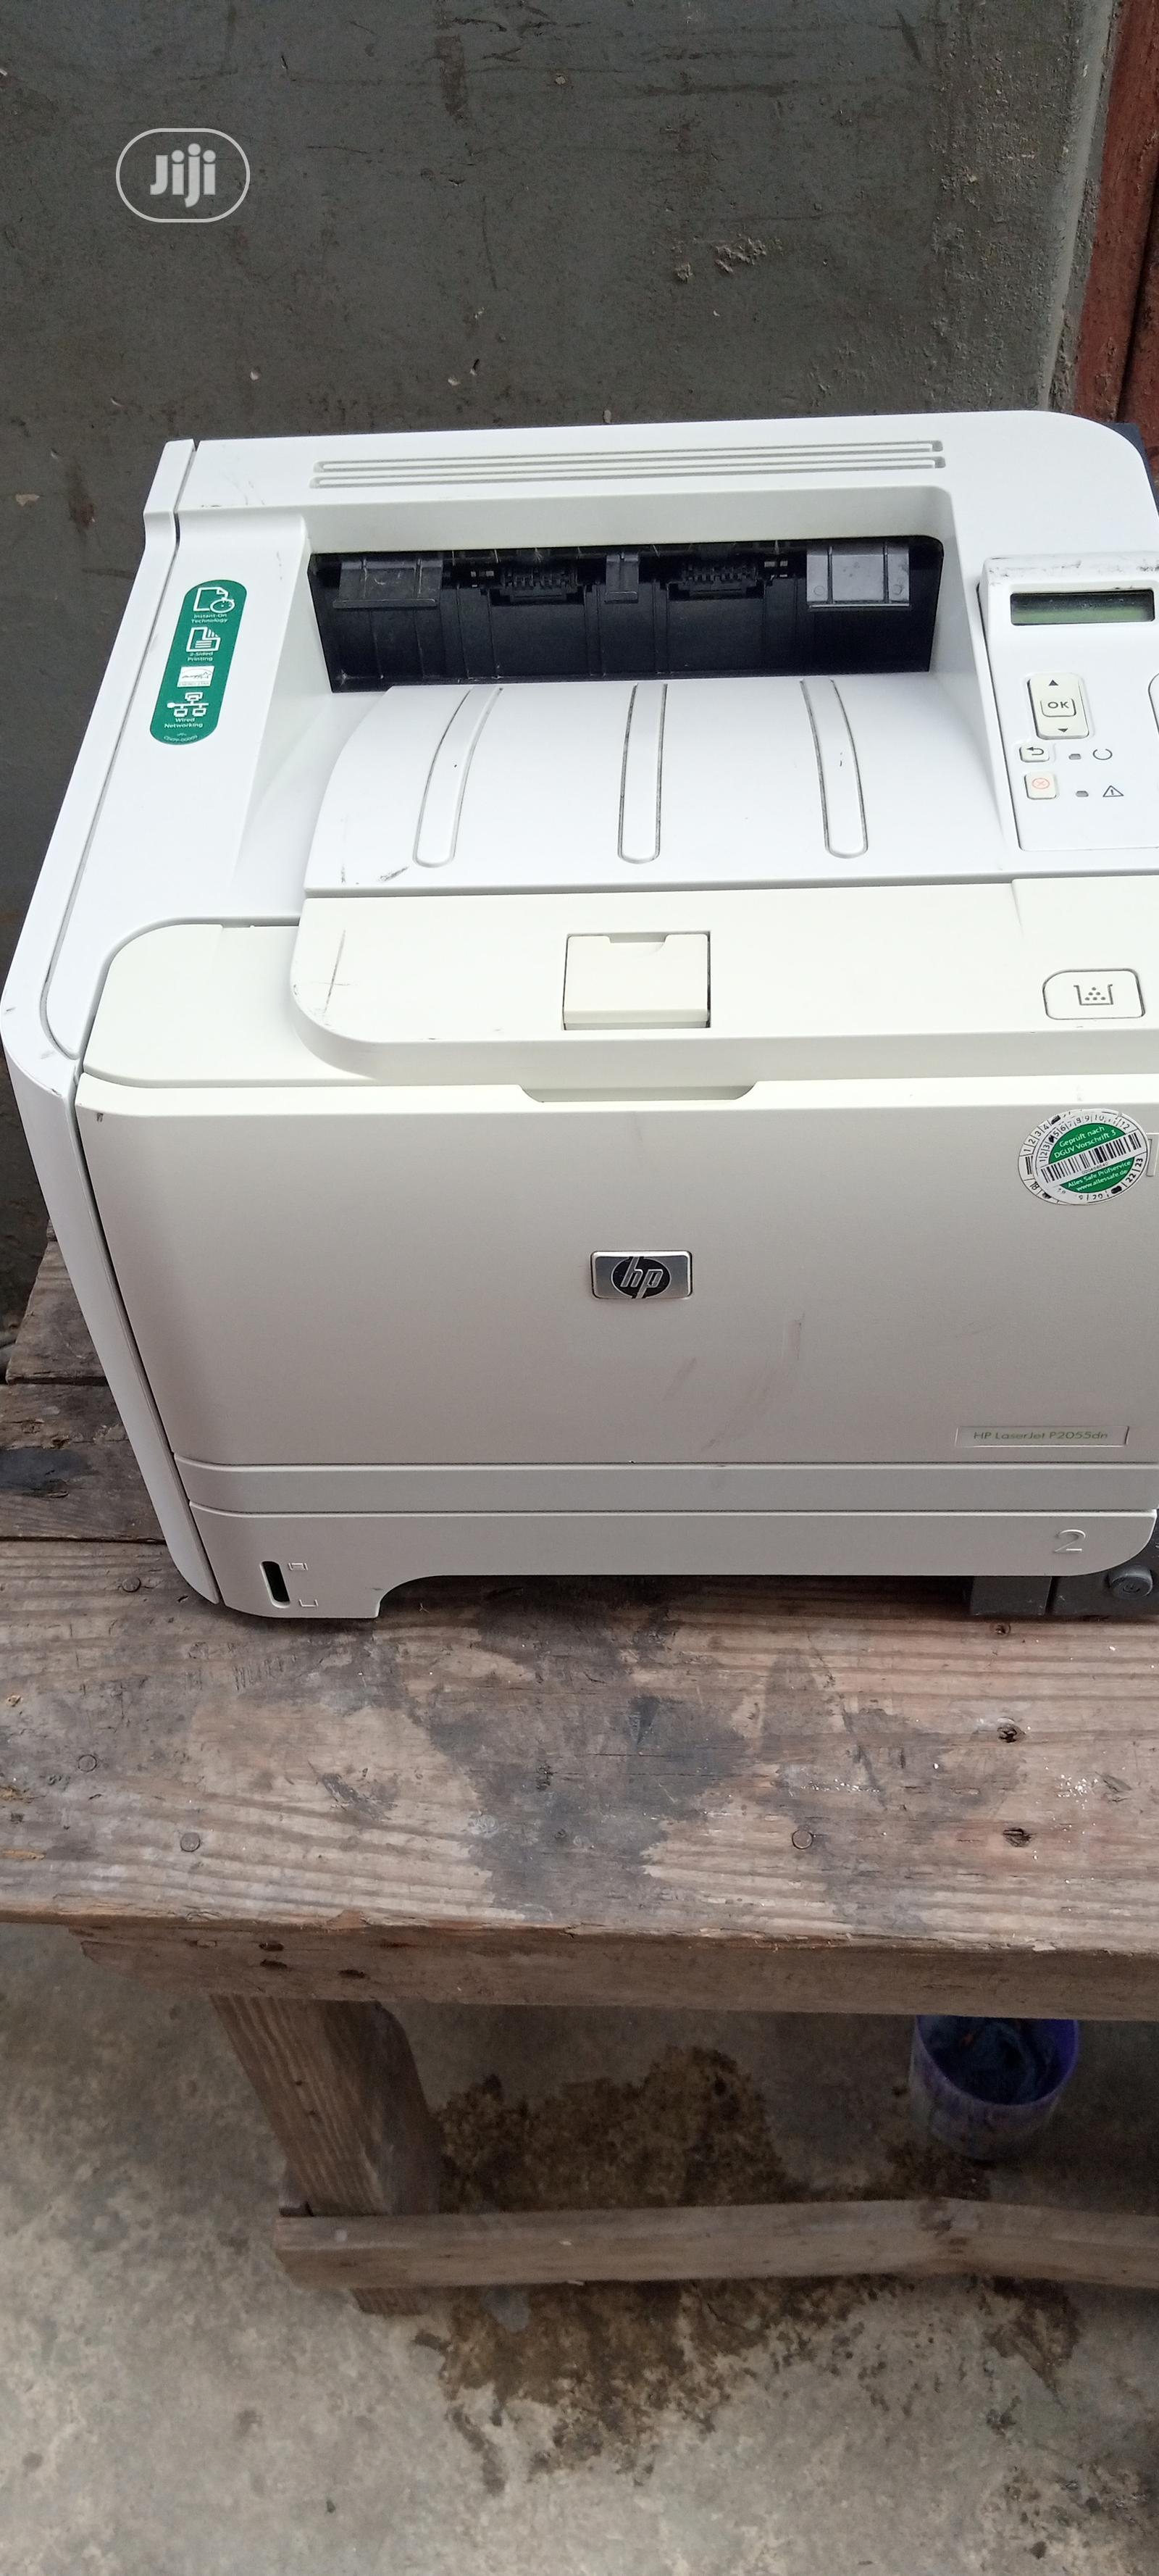 HP Laserjet P2055 Printer Black And White   Printers & Scanners for sale in Surulere, Lagos State, Nigeria